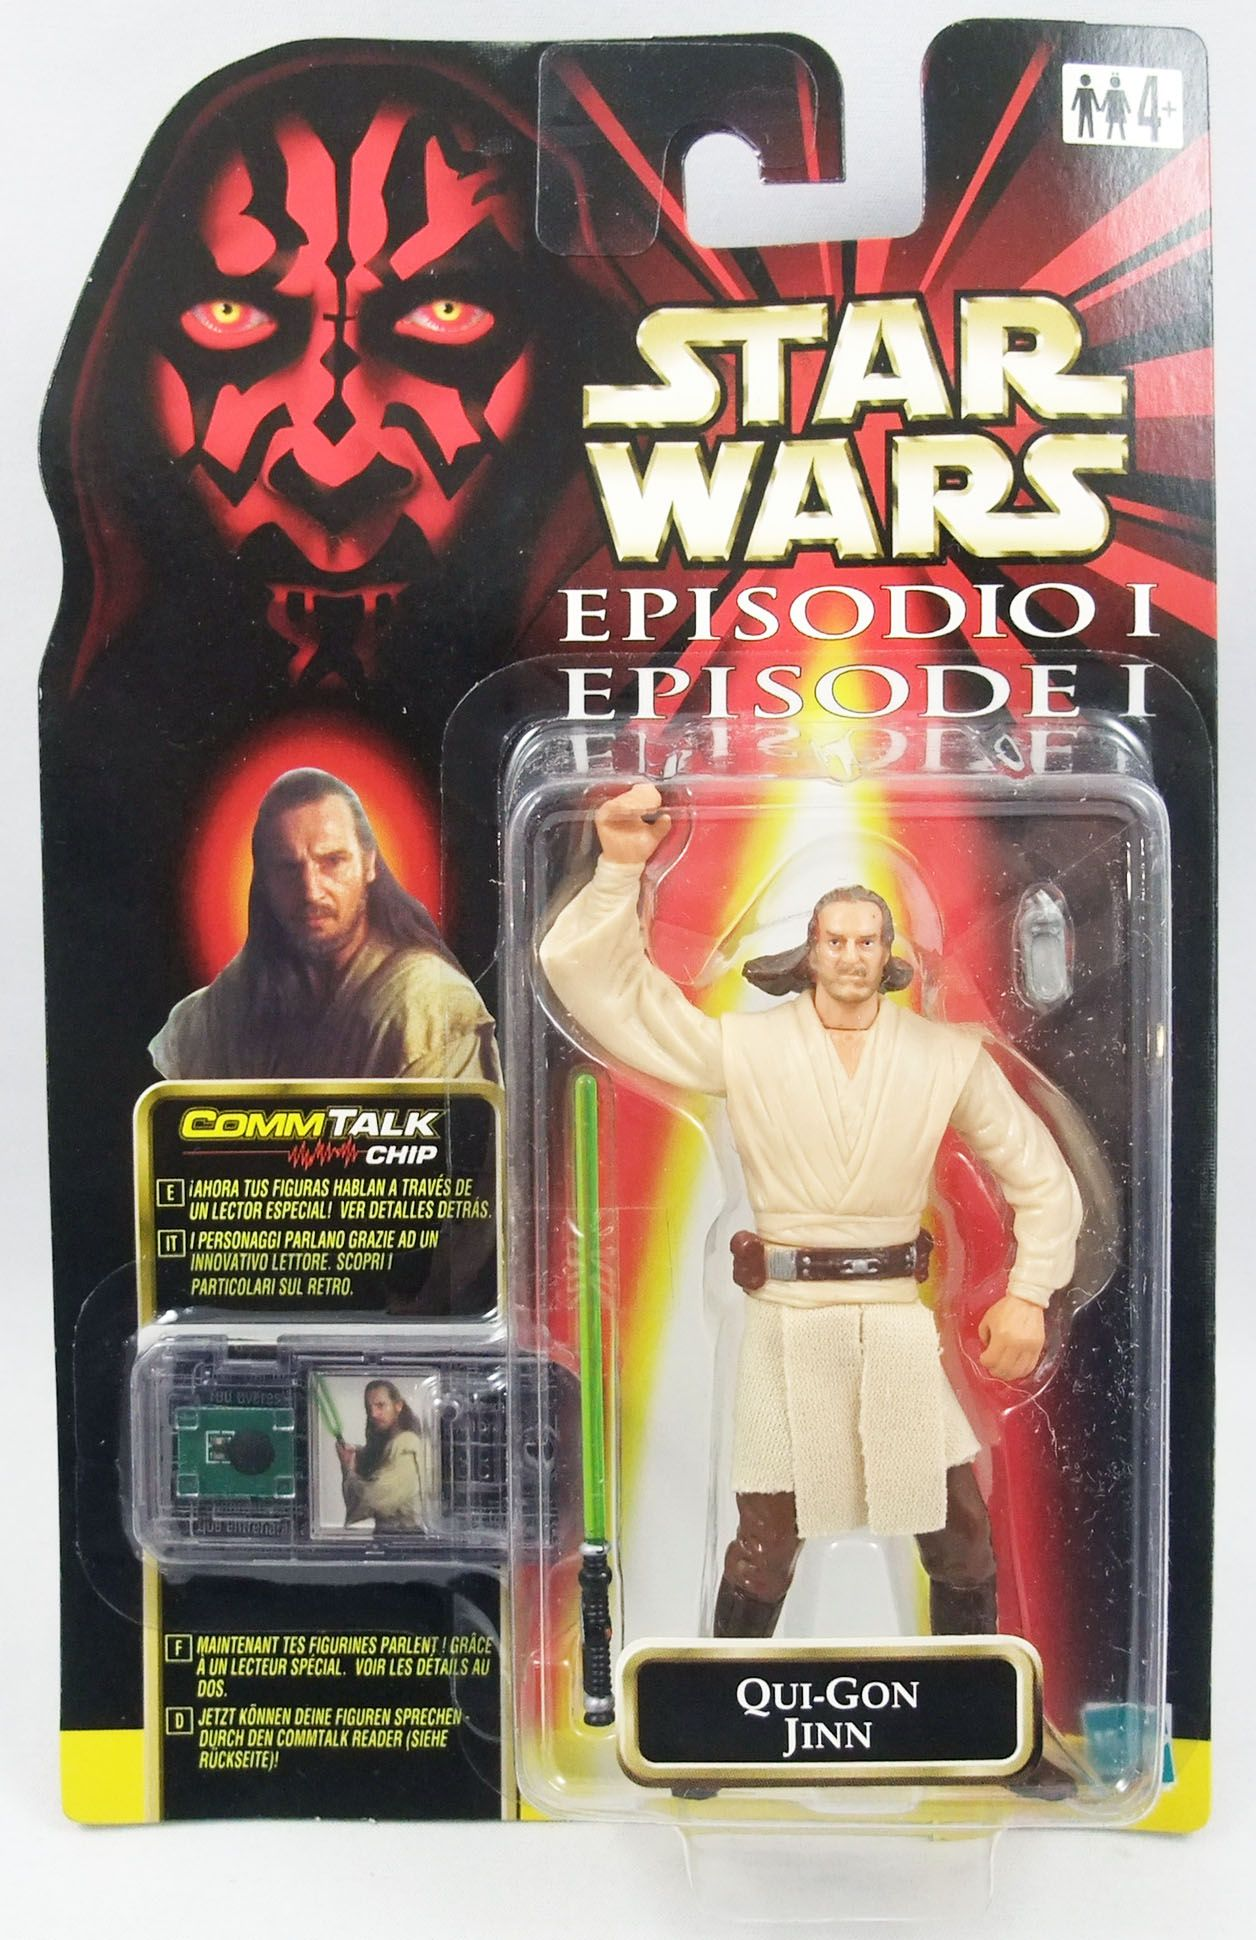 Star Wars Episode 1 (The Phantom Menace) - Hasbro - Qui-Gon Jinn (Jedi Knight)